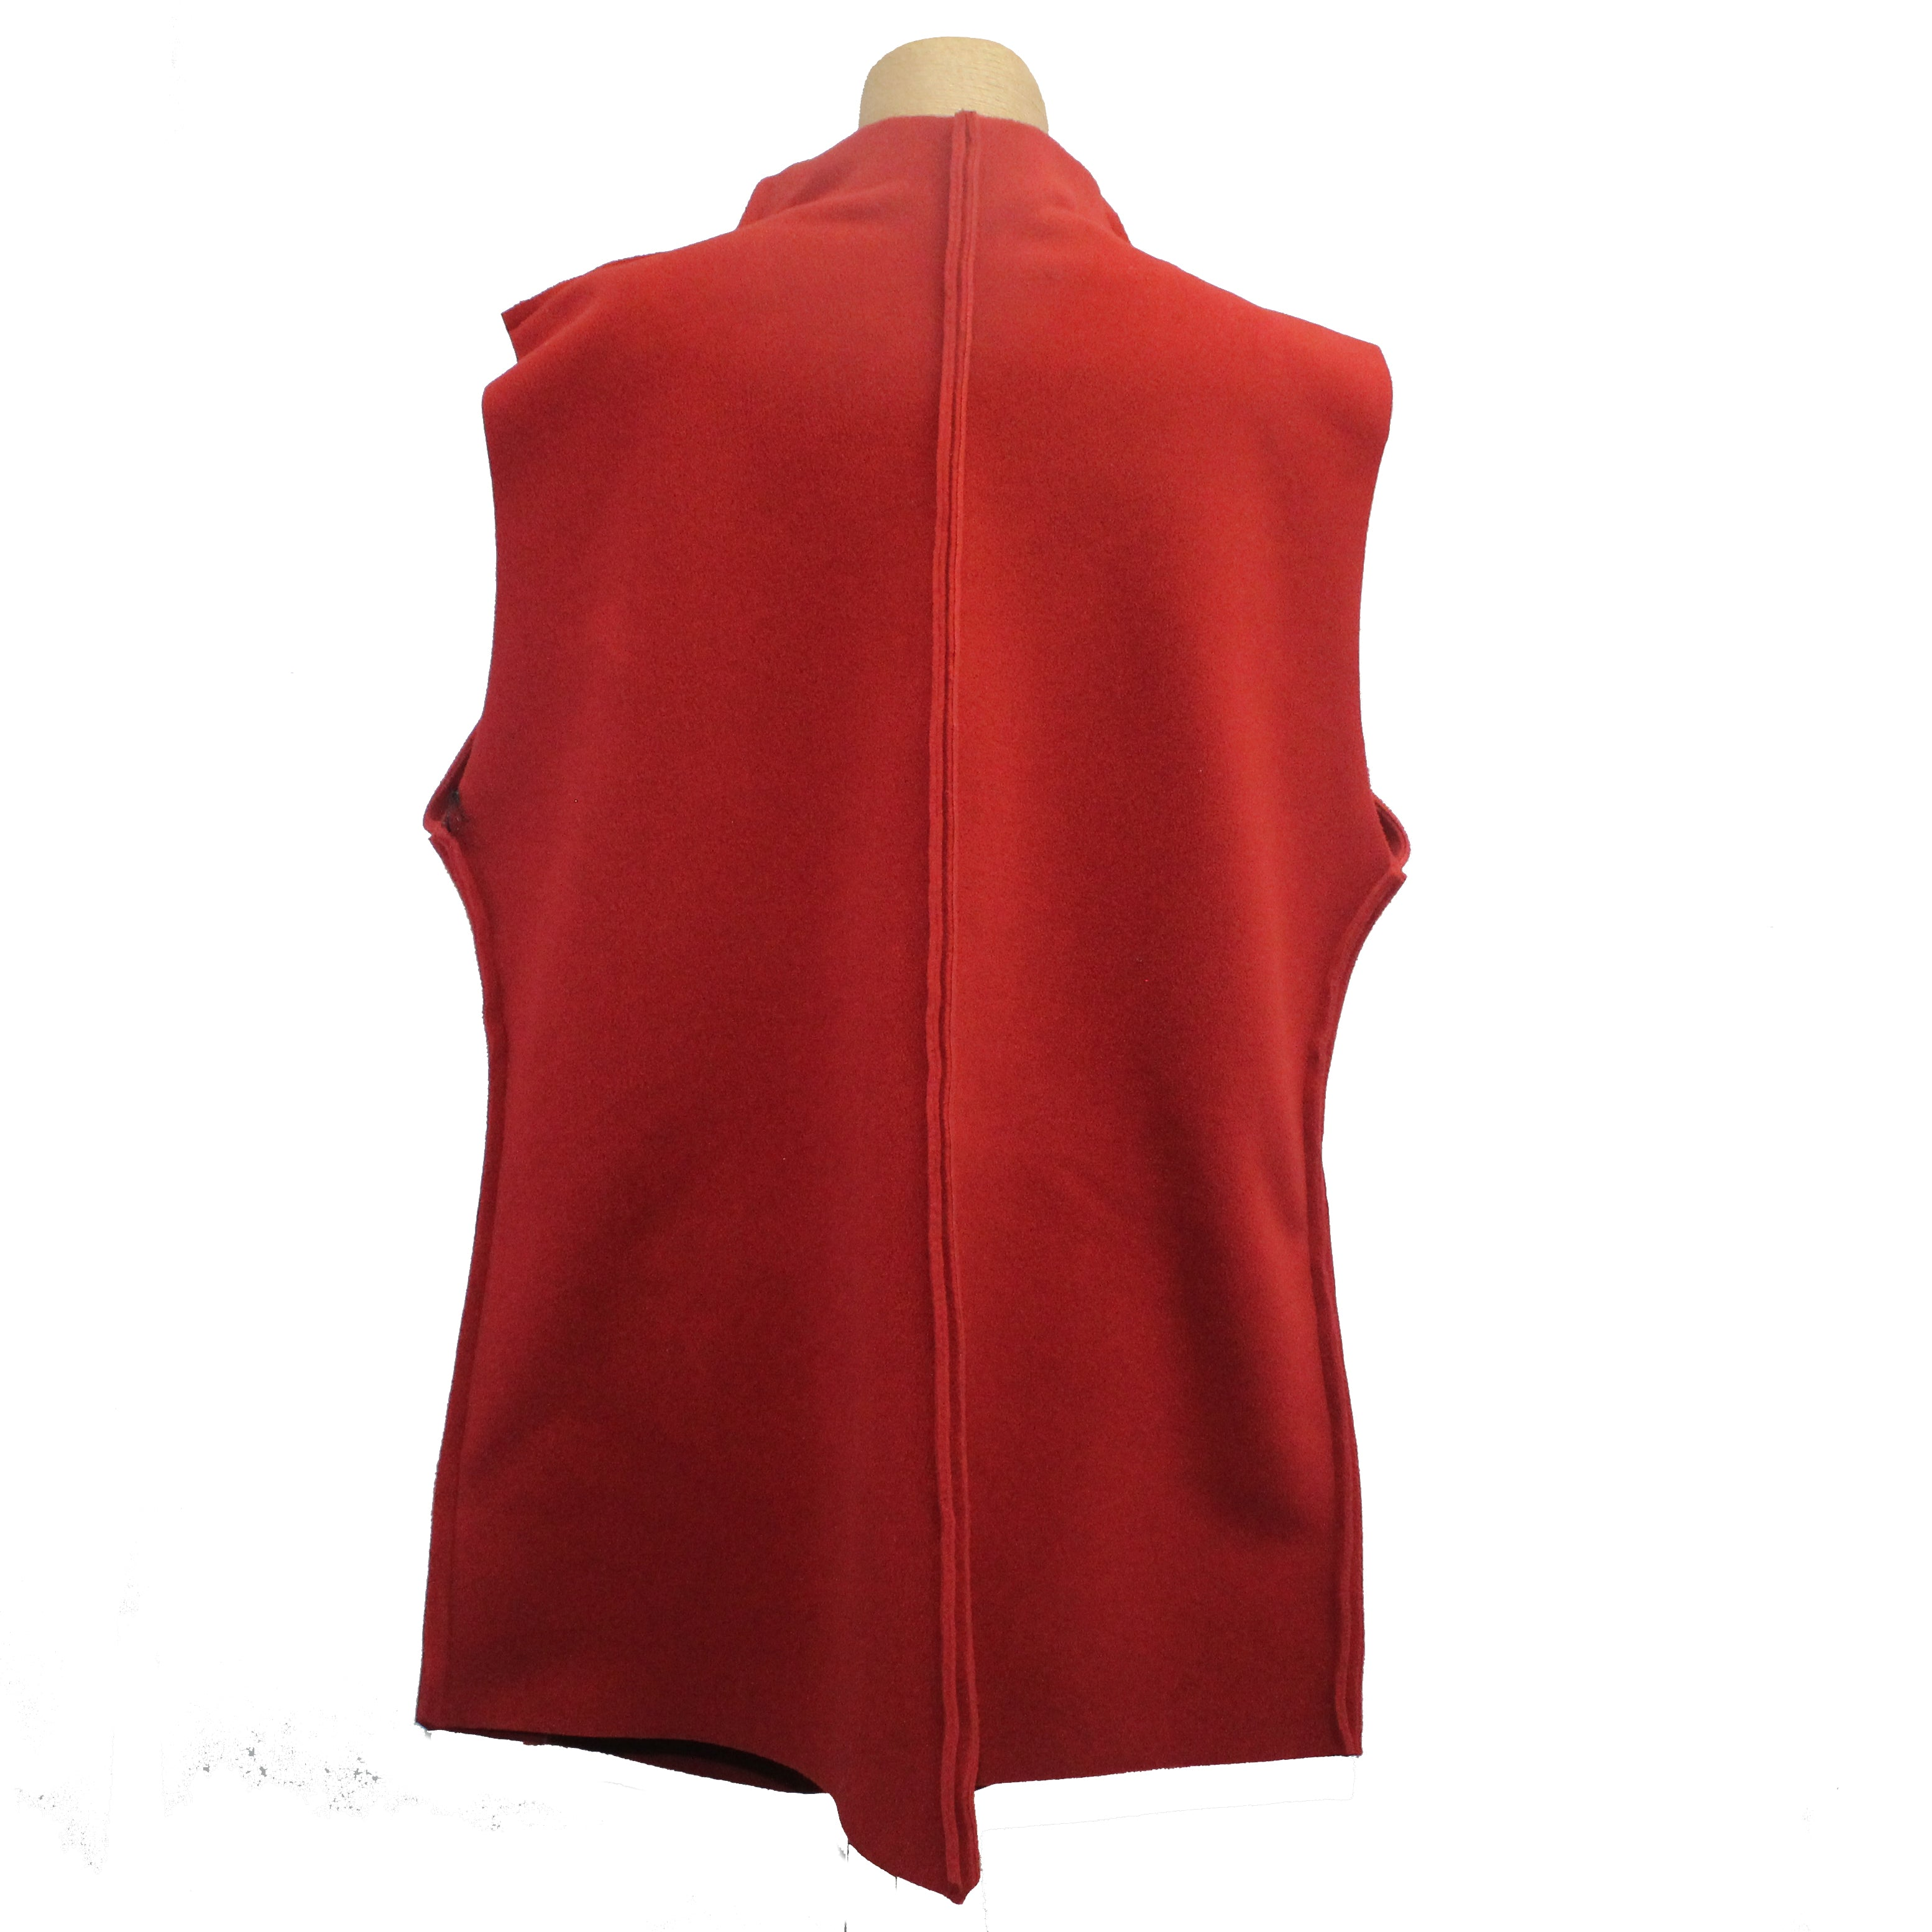 Mary Stackhouse Vest, Long, Red, M/L